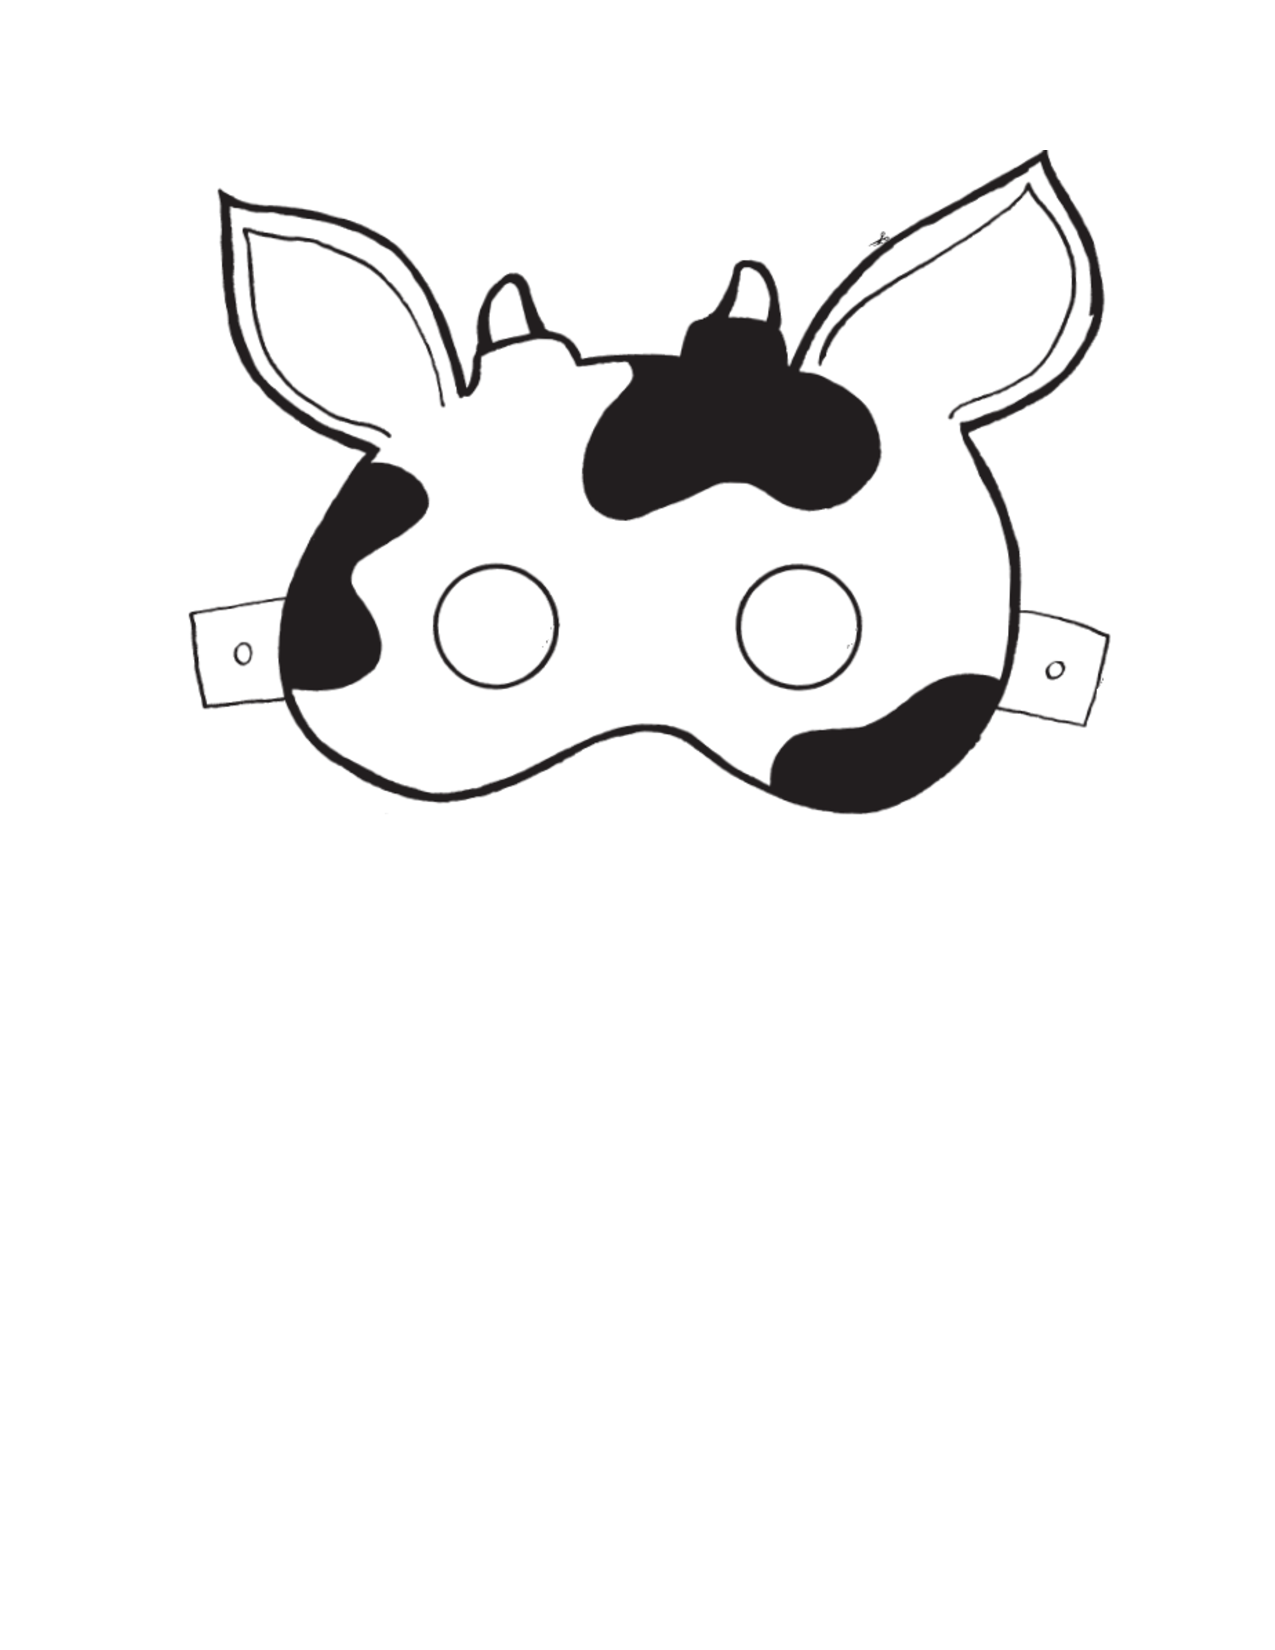 photograph relating to Cow Costume Printable named small cow mask crafts Cow mask, Printable cow mask